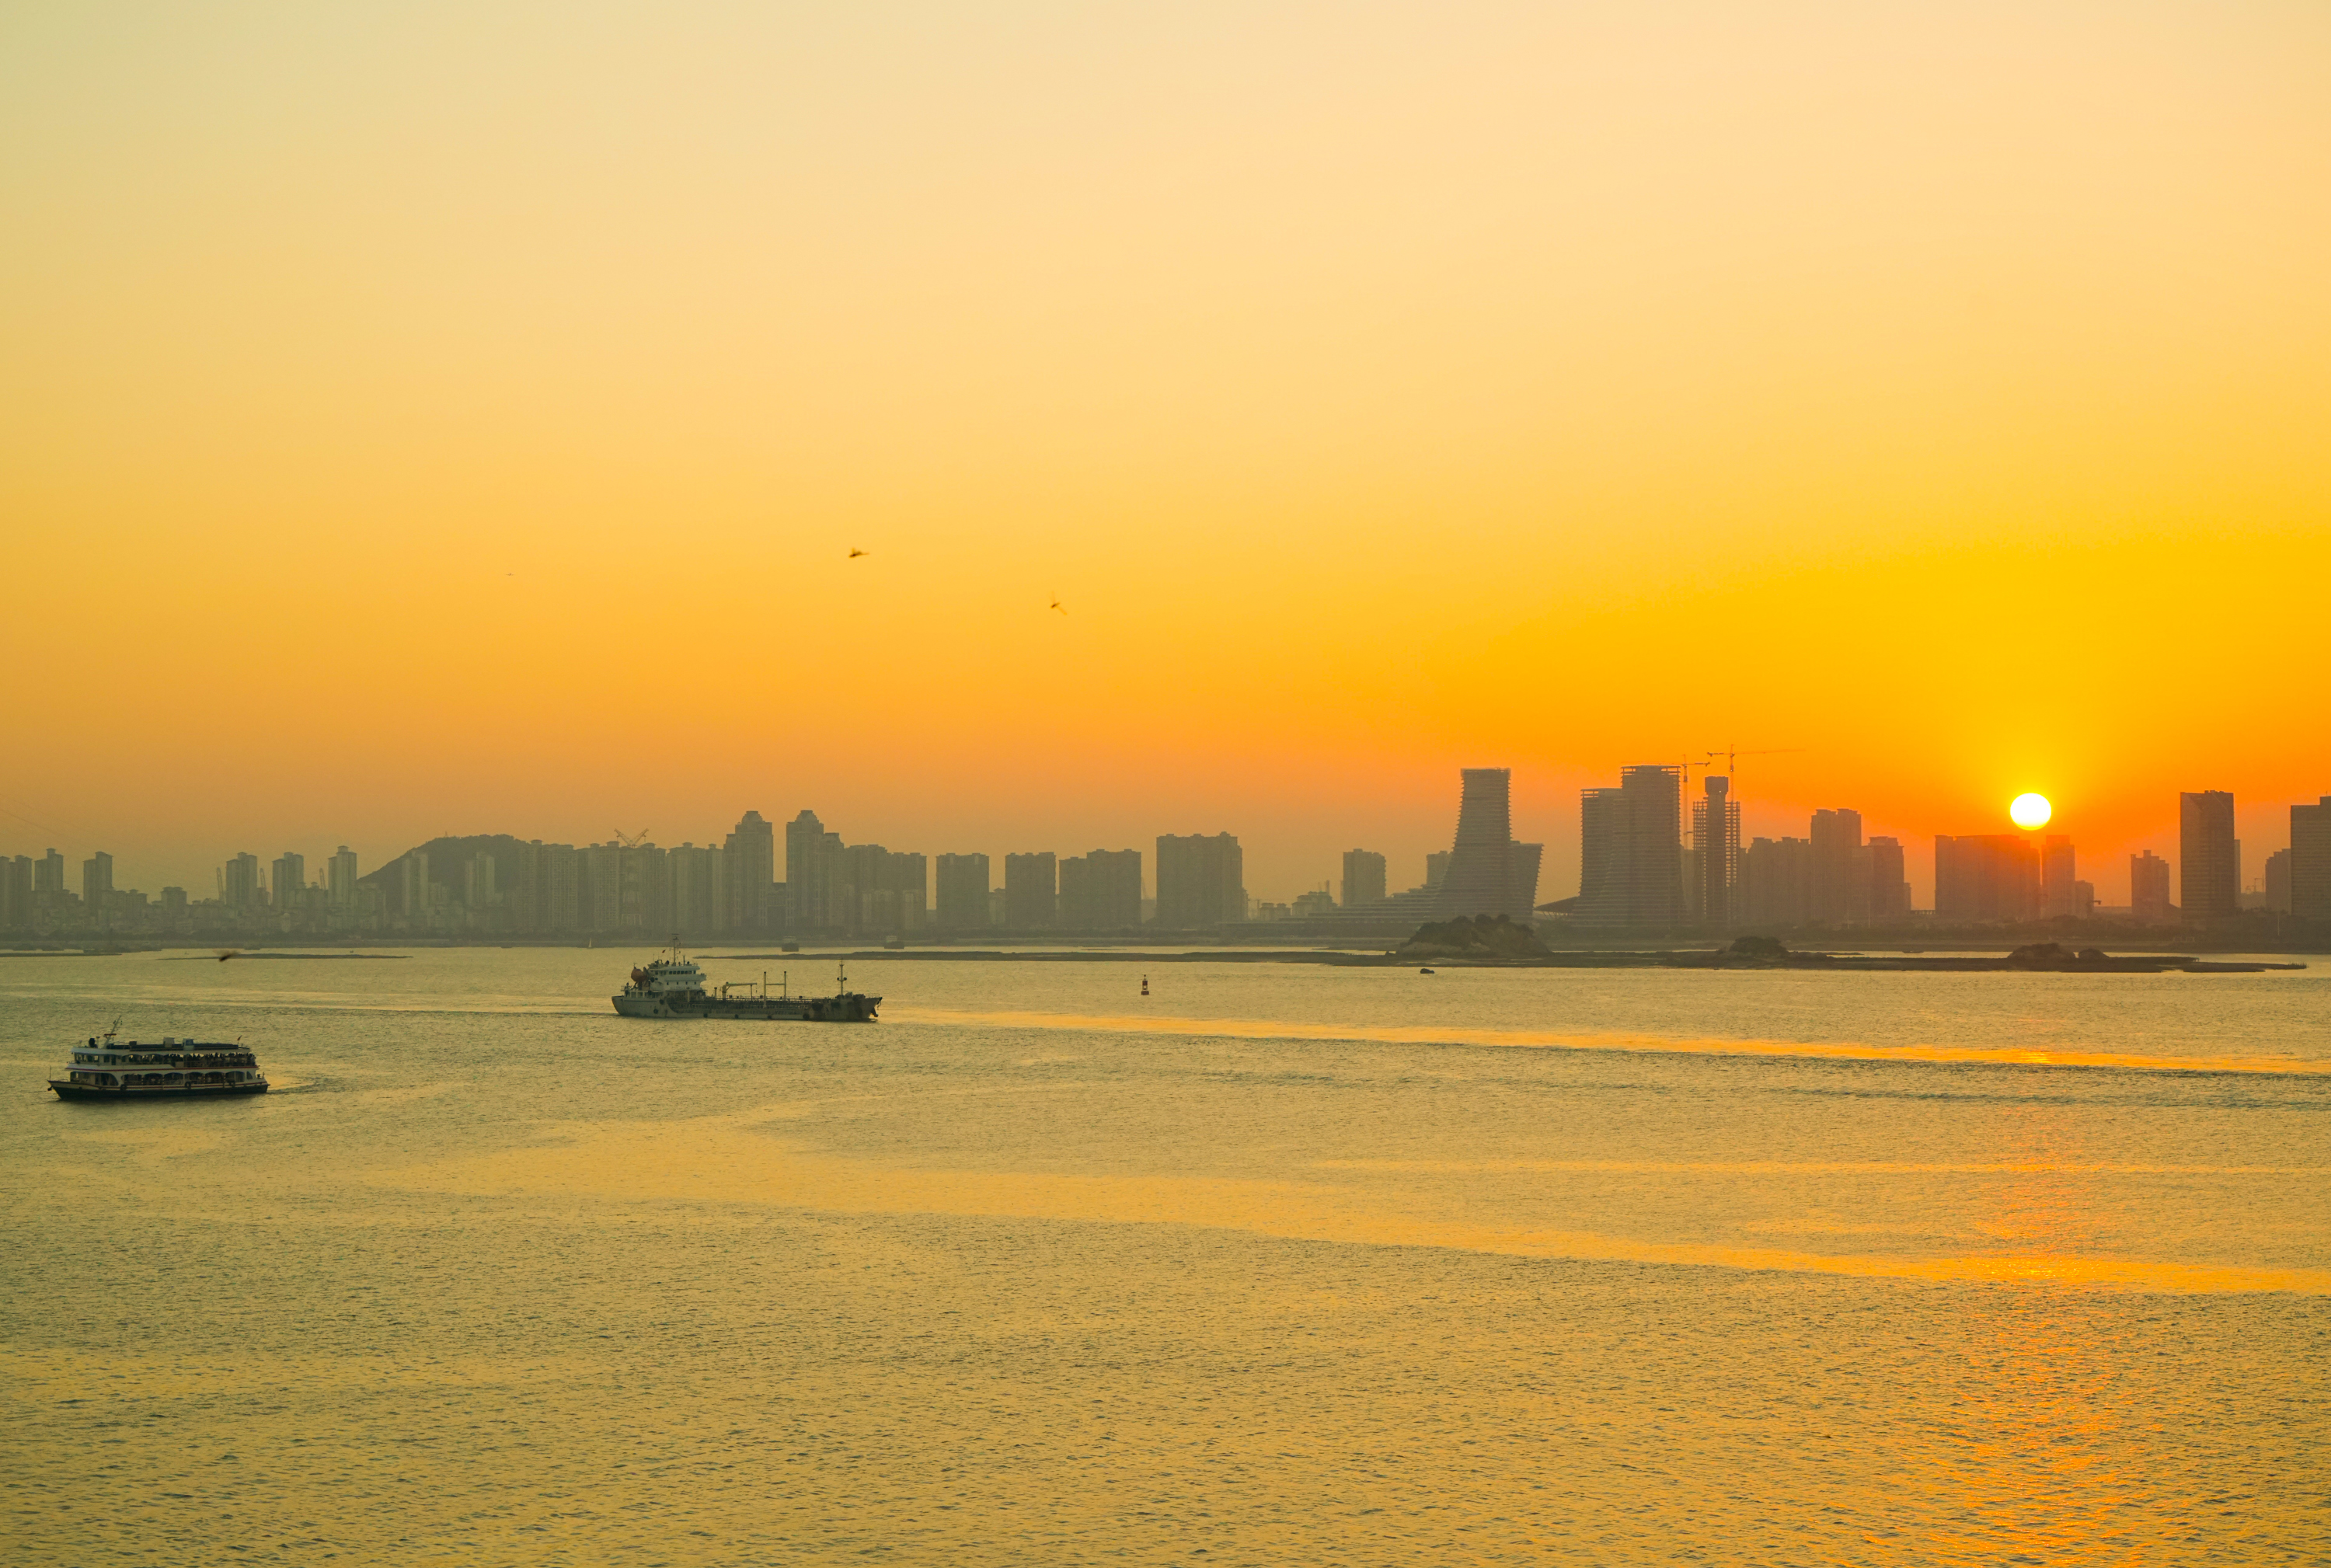 Xiamen by the sea under sunset light